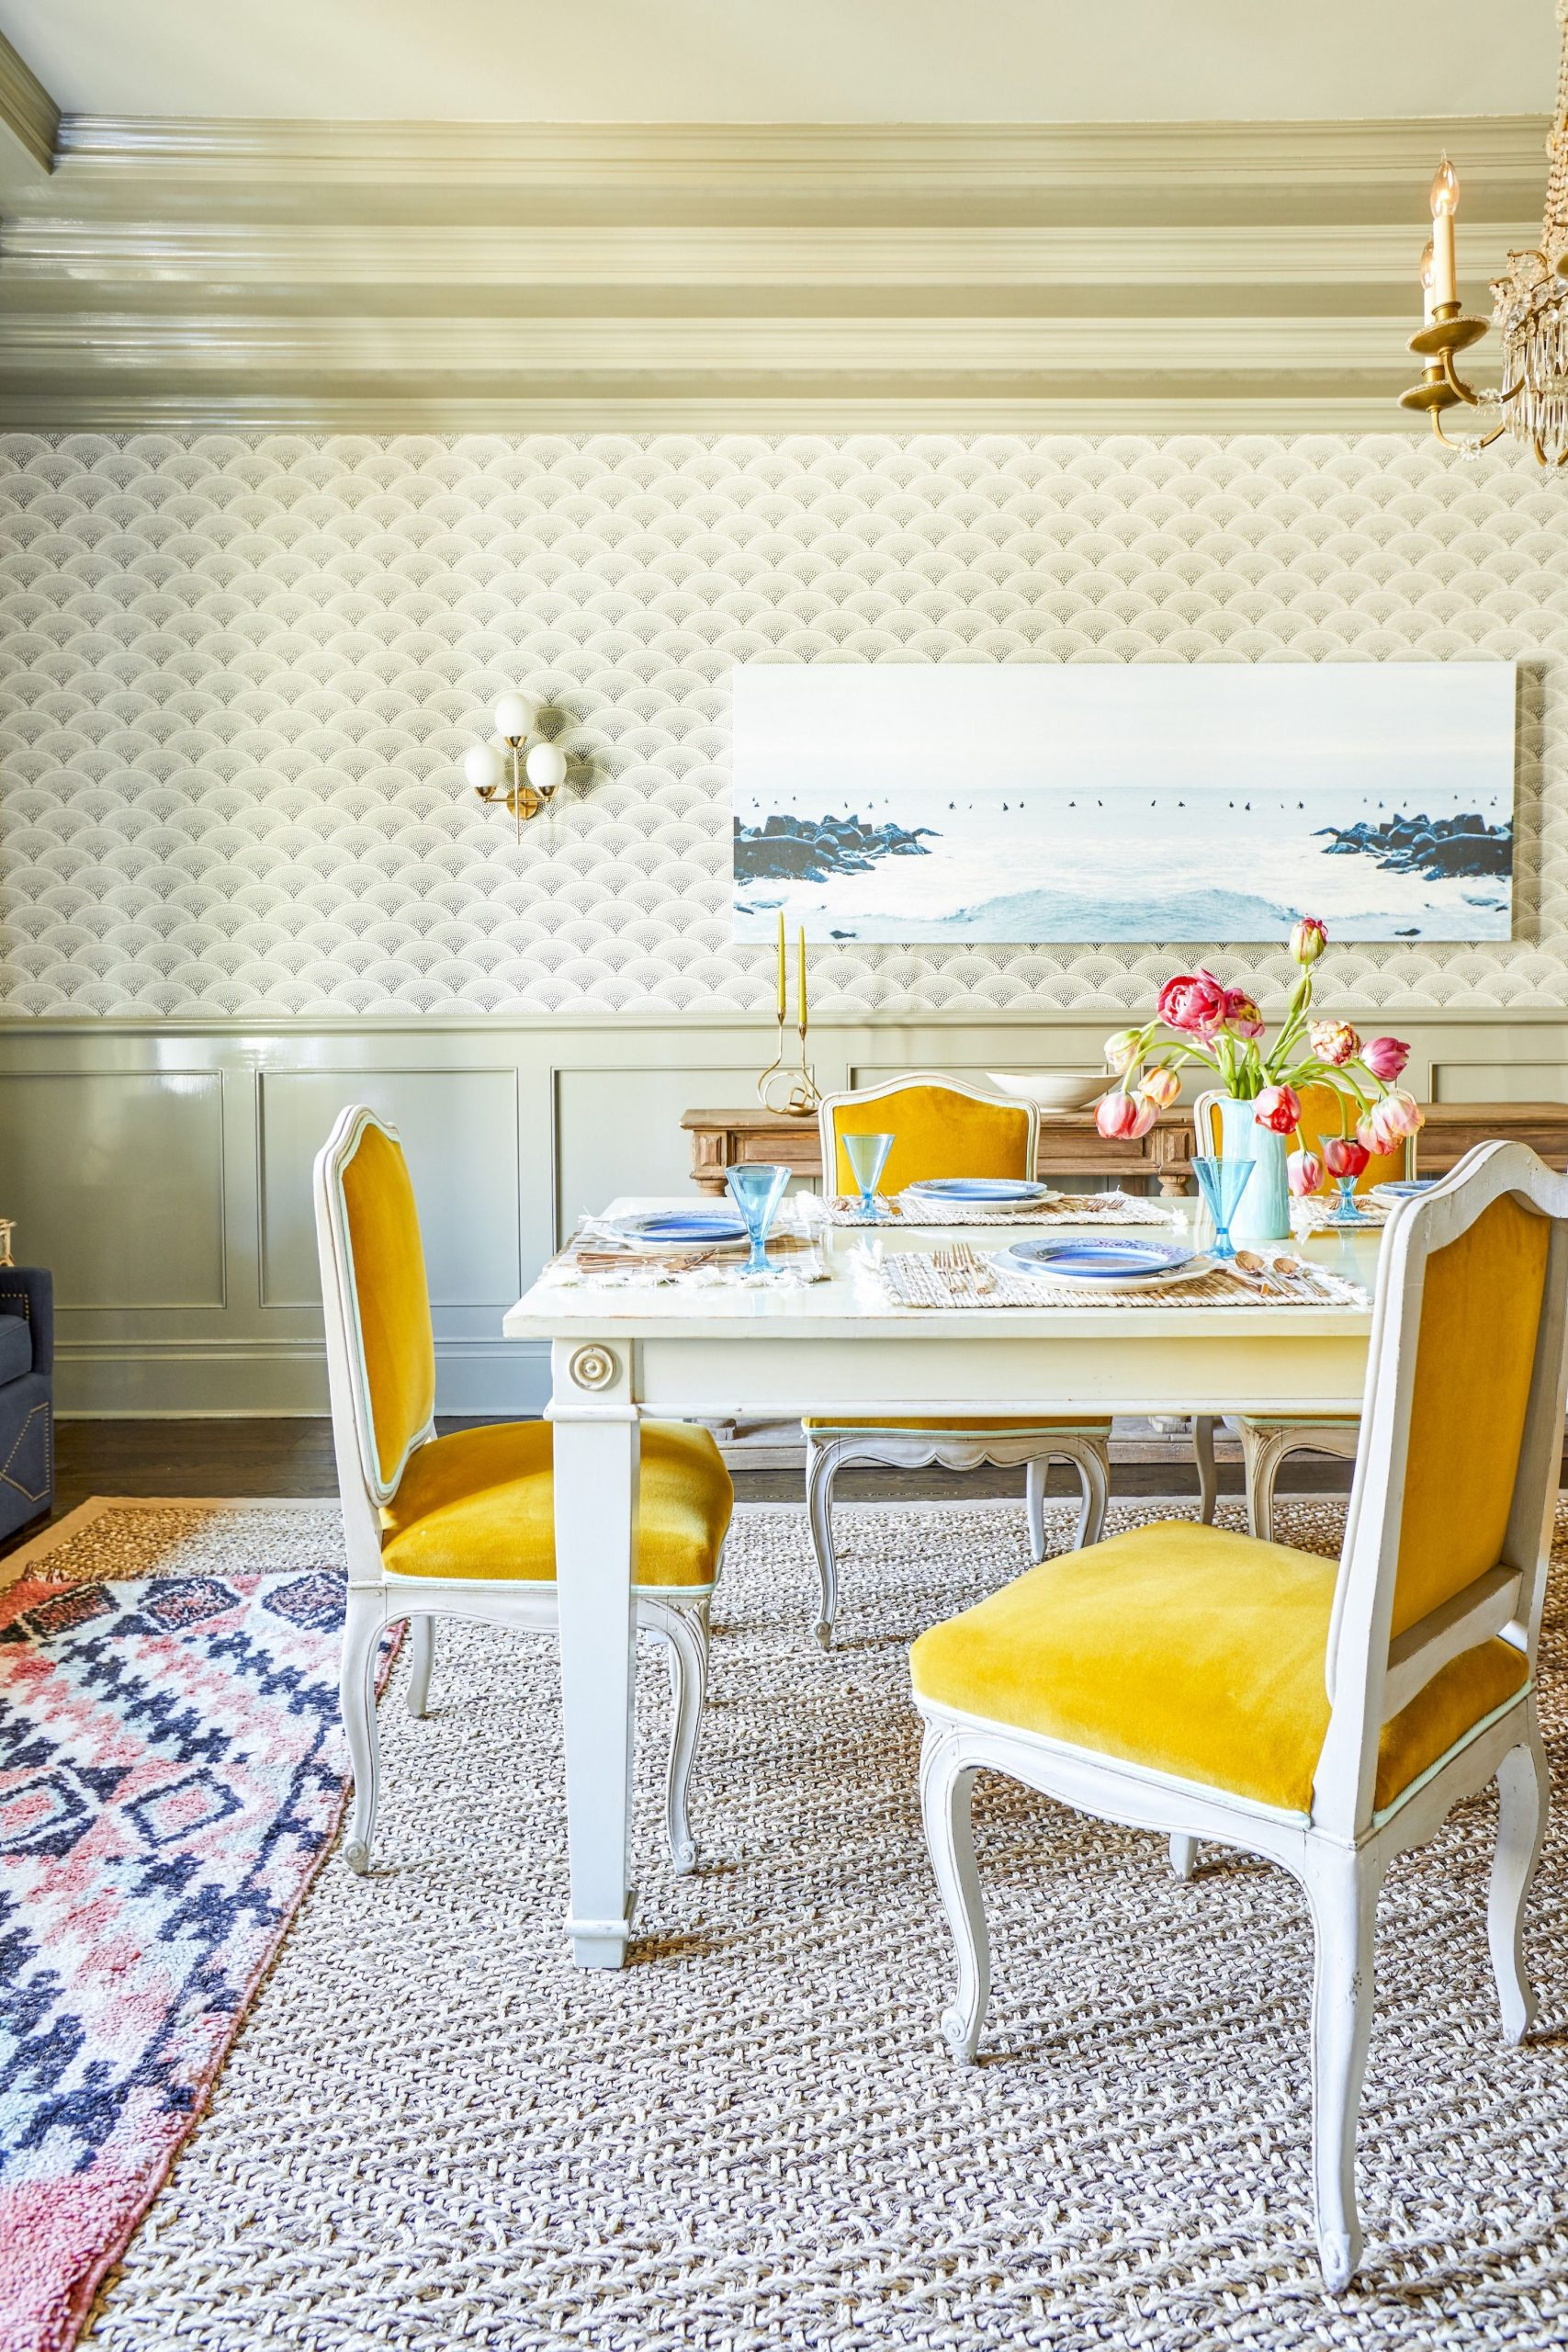 9 Best Dining Room Decorating Ideas - Pictures of Dining Room Decor - Light Yellow Dining Room Ideas